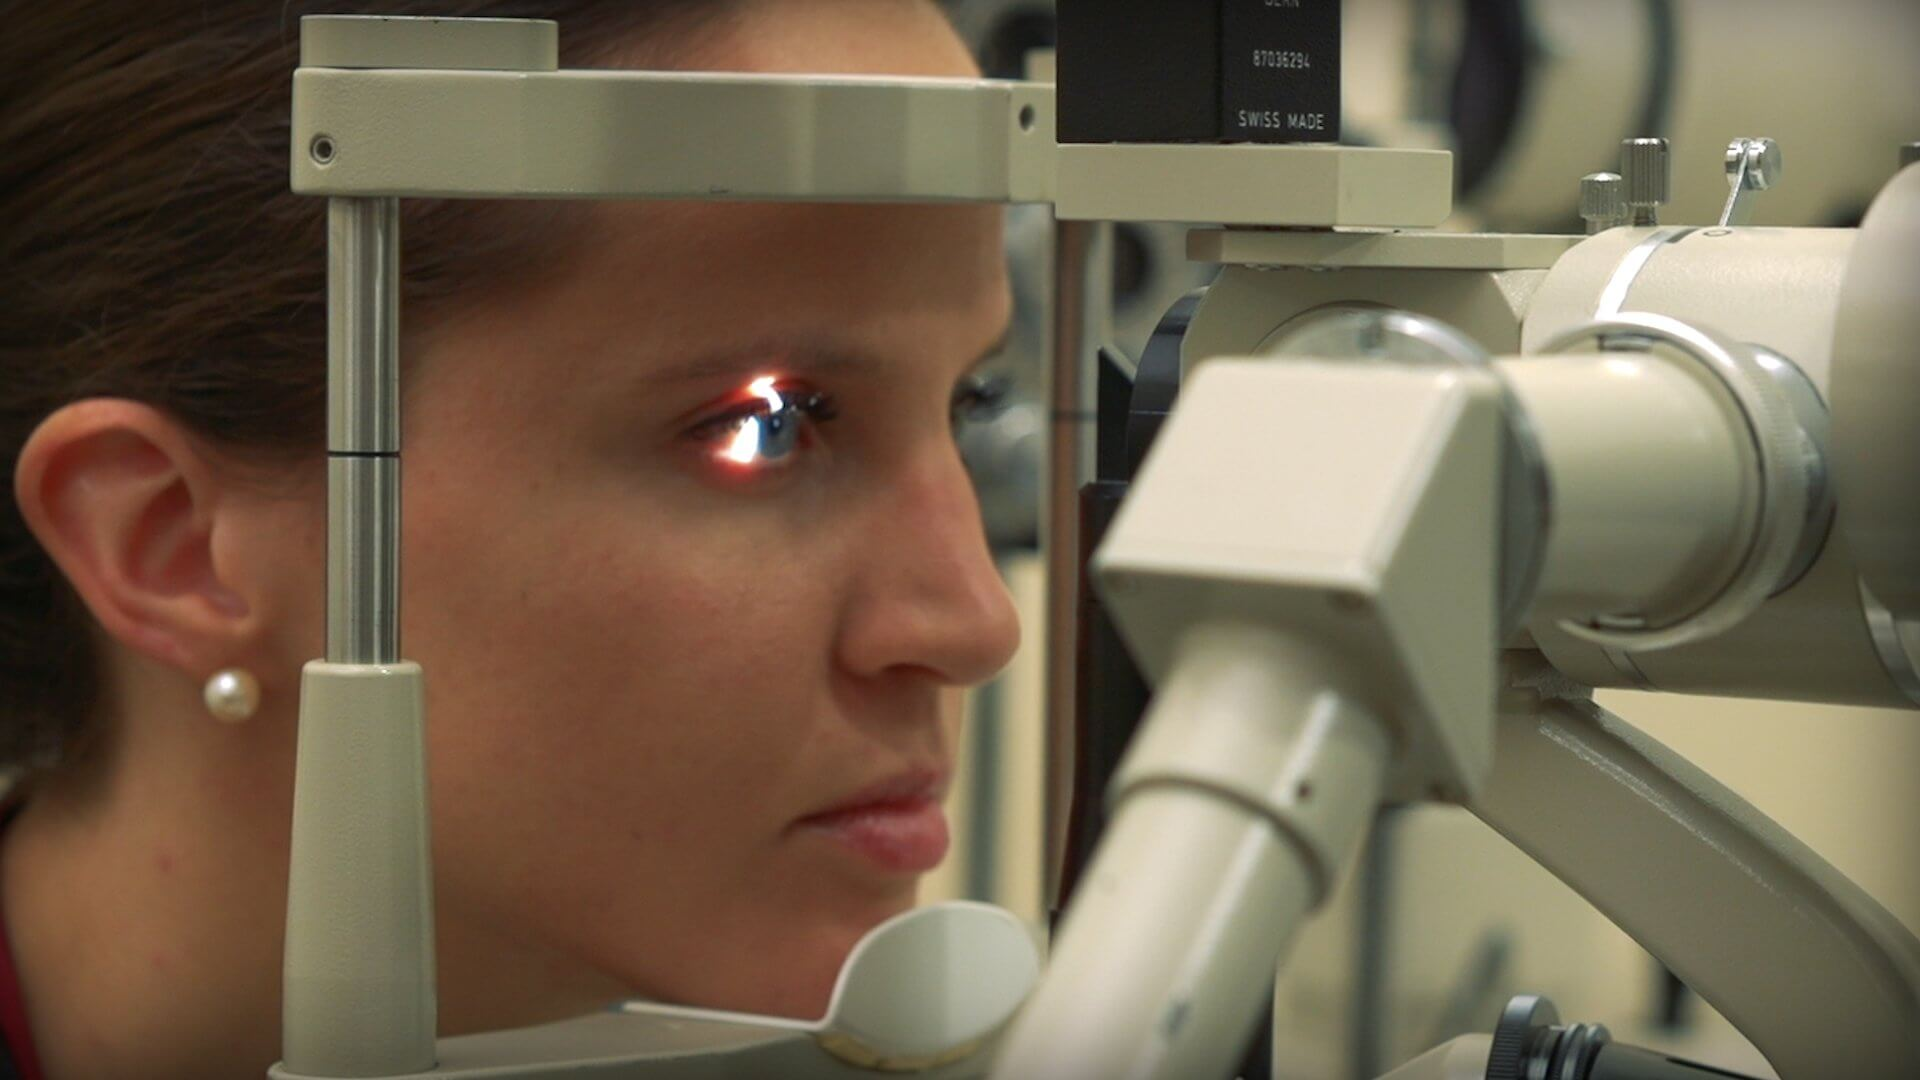 The San José Clinic offers optometry care for patients in addition to many other services.